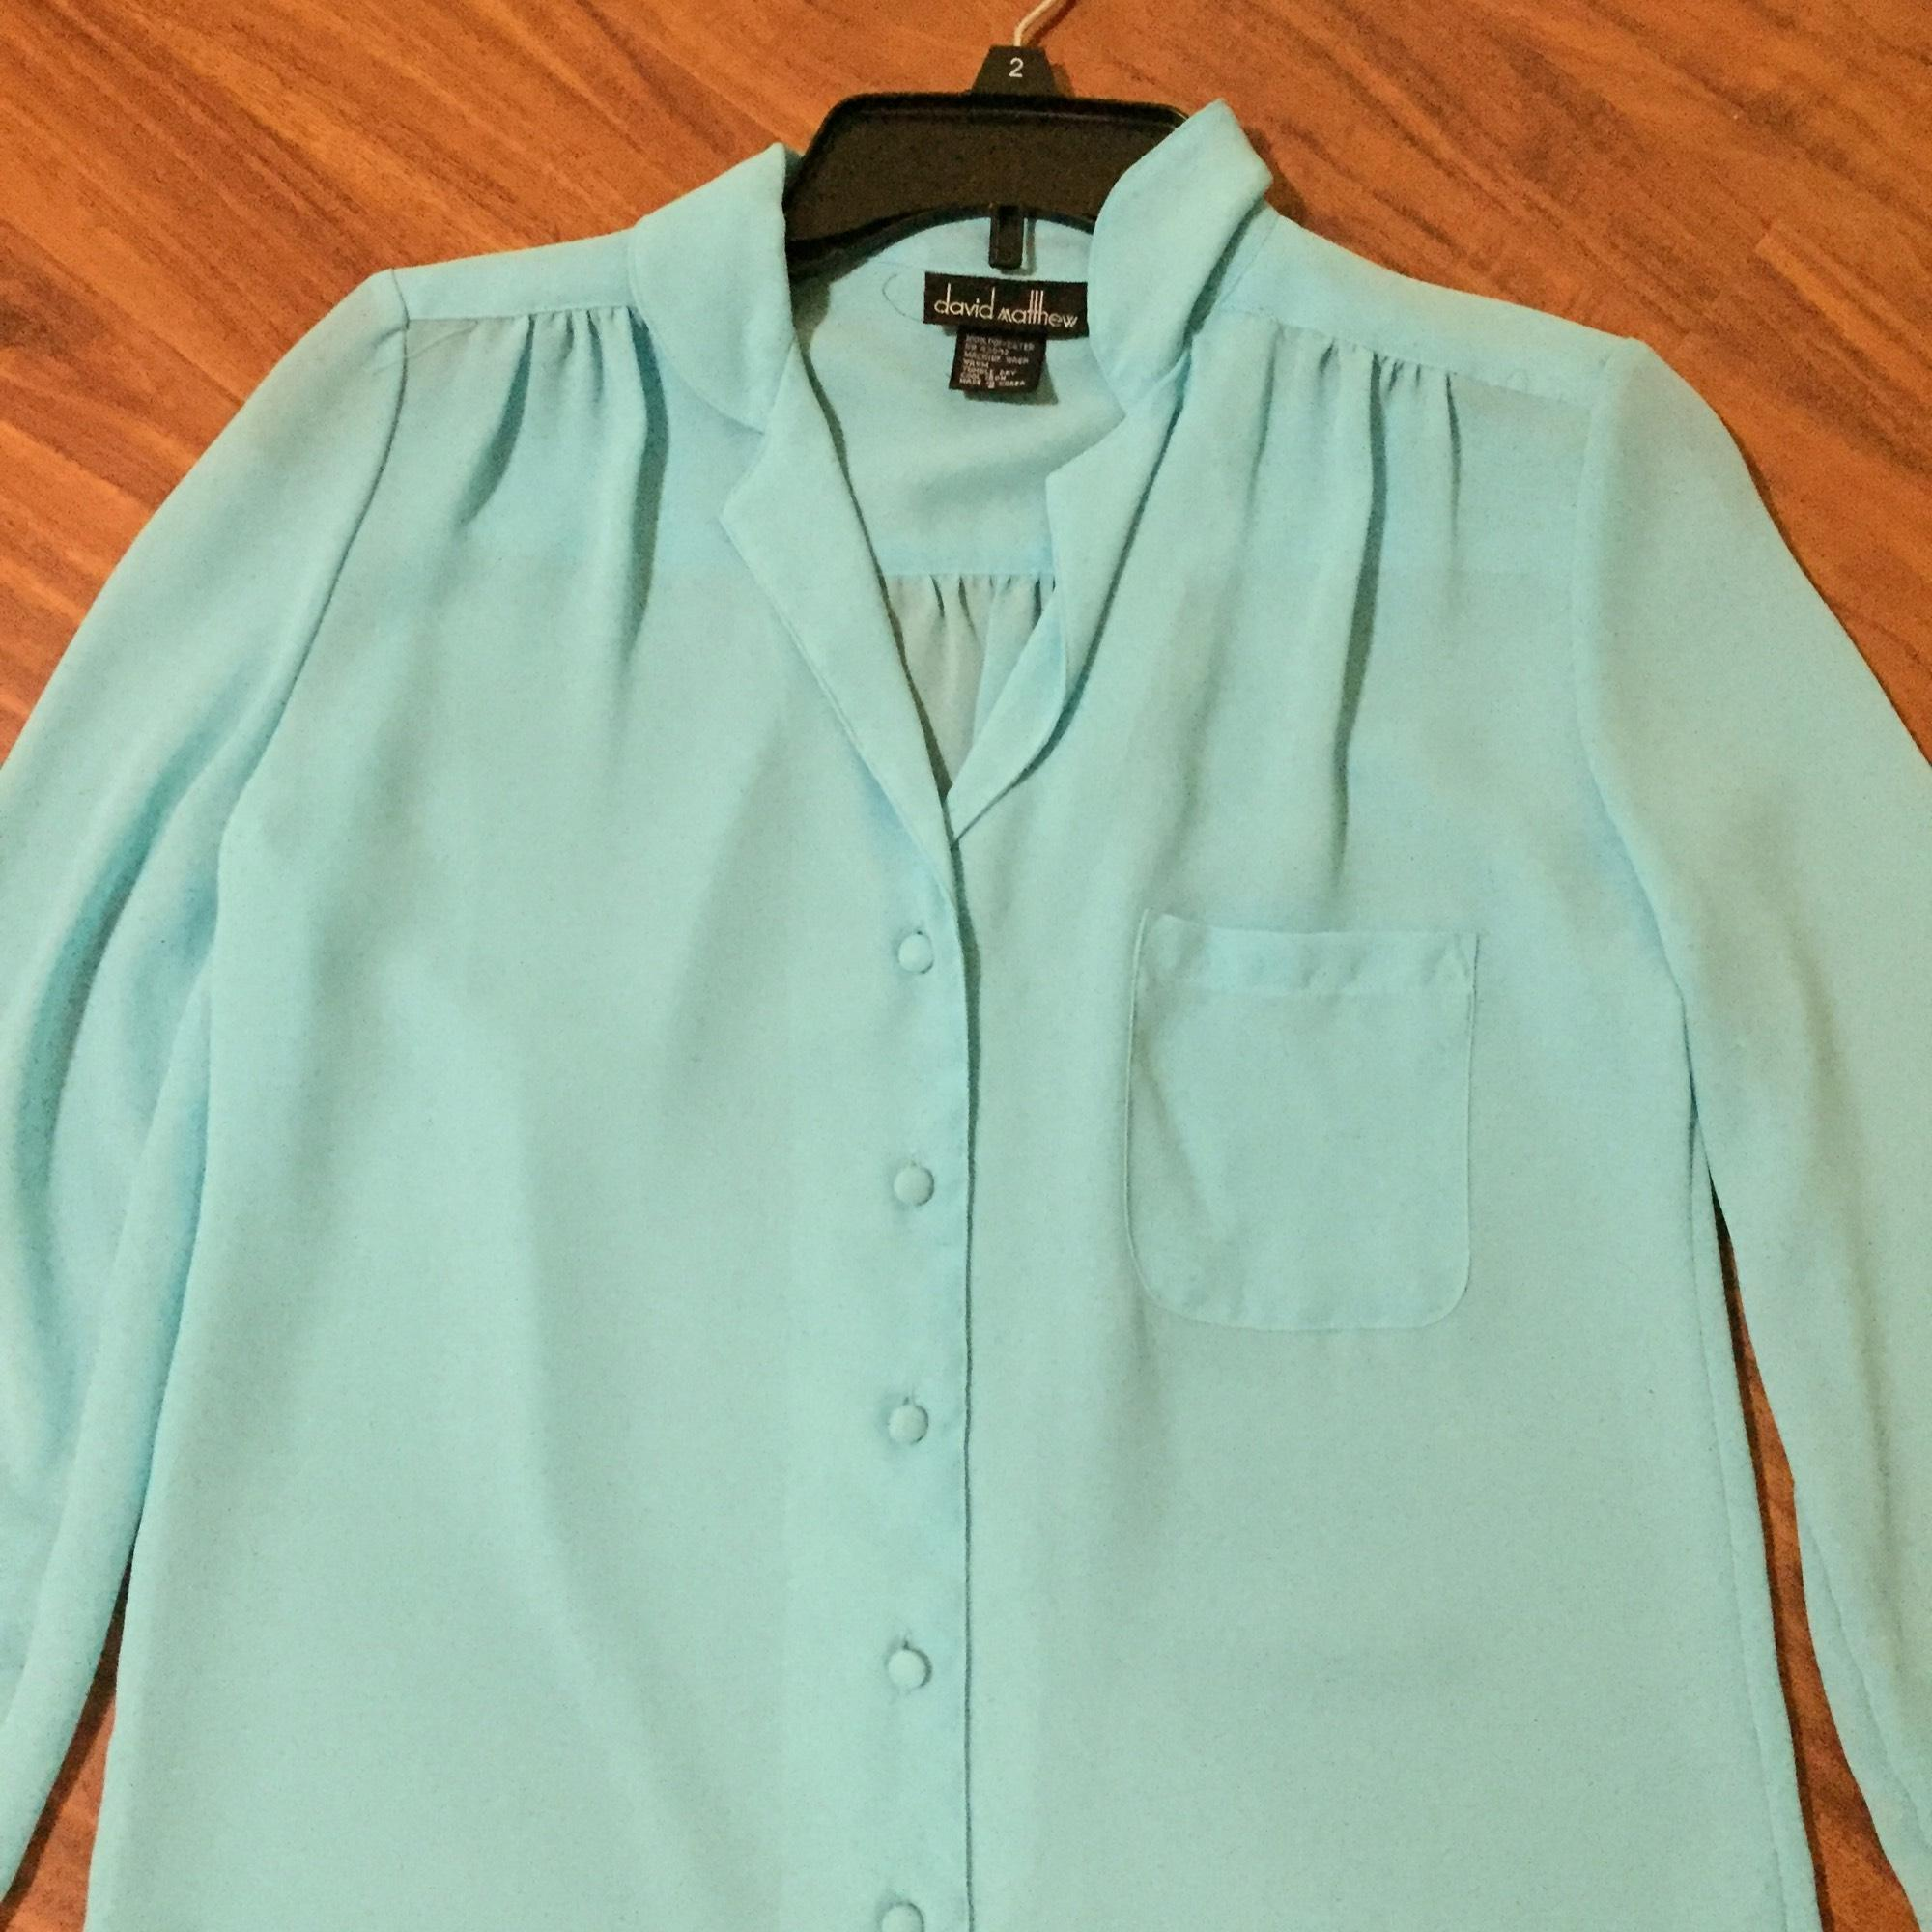 Men's Button-Downs. The perfect addition to top off any outfit, men's button-down shirts from Kohl's are ideal for every ajaykumarchejarla.ml offer many styles, designs and fits, meaning your options for men's button-downs from Kohl's are almost endless.